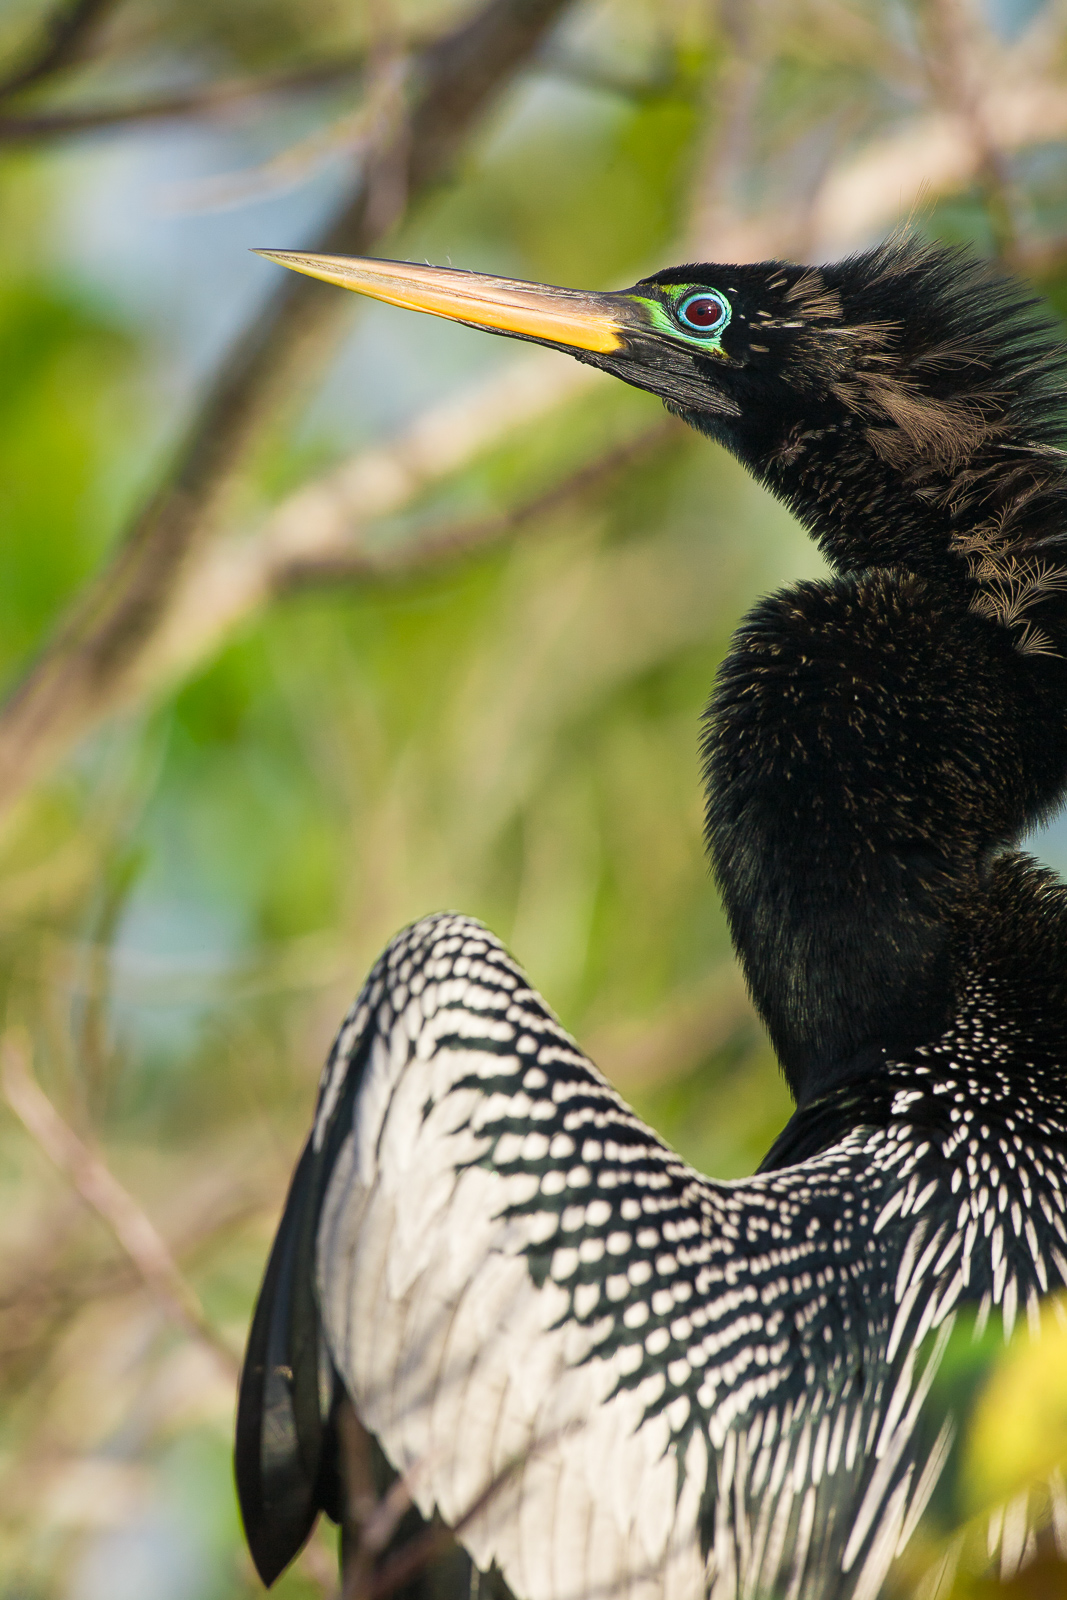 Fanning Out,Florida, Anhinga, Florida, Everglades National Park, photo